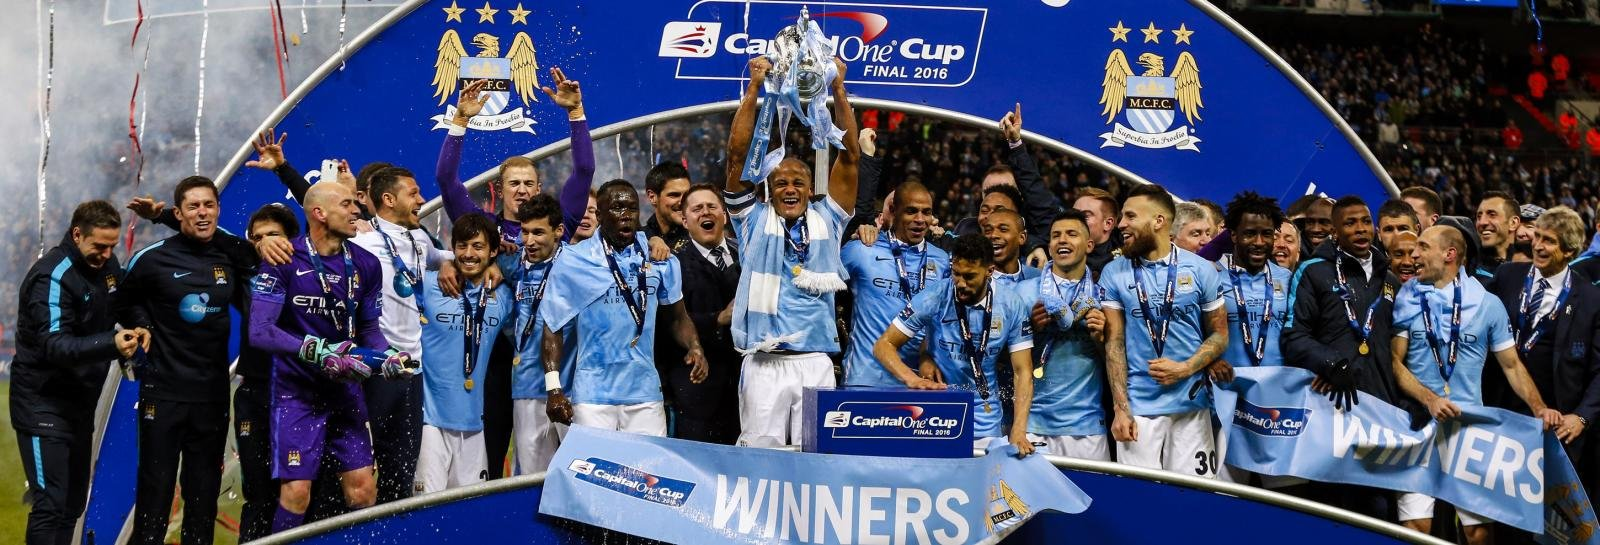 3 Things We Learned From The 2016 Capital One Cup Final